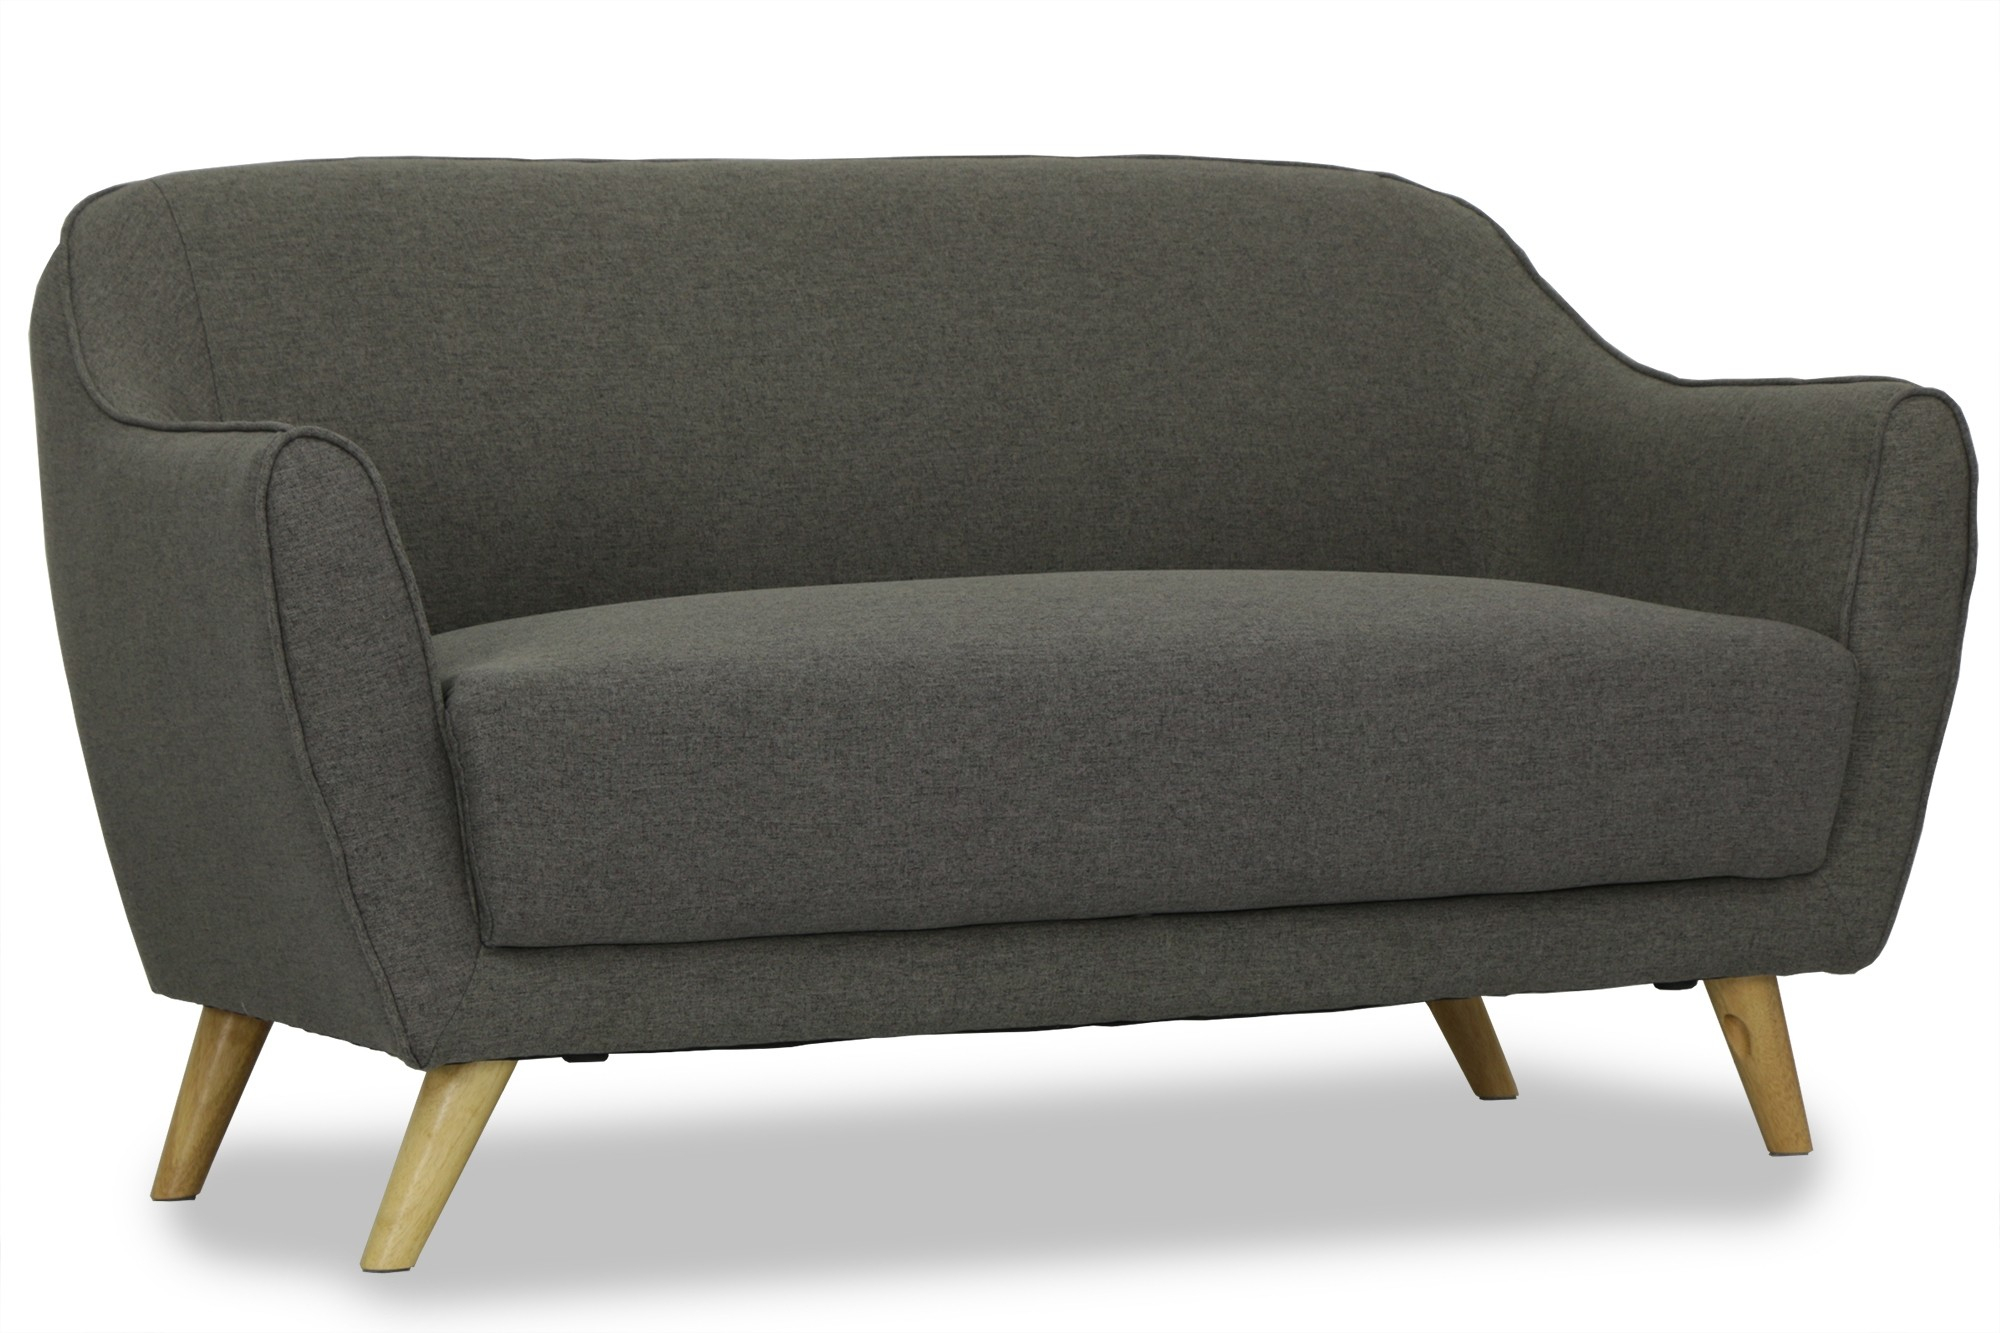 Kokoro Ii 2 Seater Sofa | Furniture & Home Décor | Fortytwo With Gina Blue Leather Sofa Chairs (View 24 of 25)